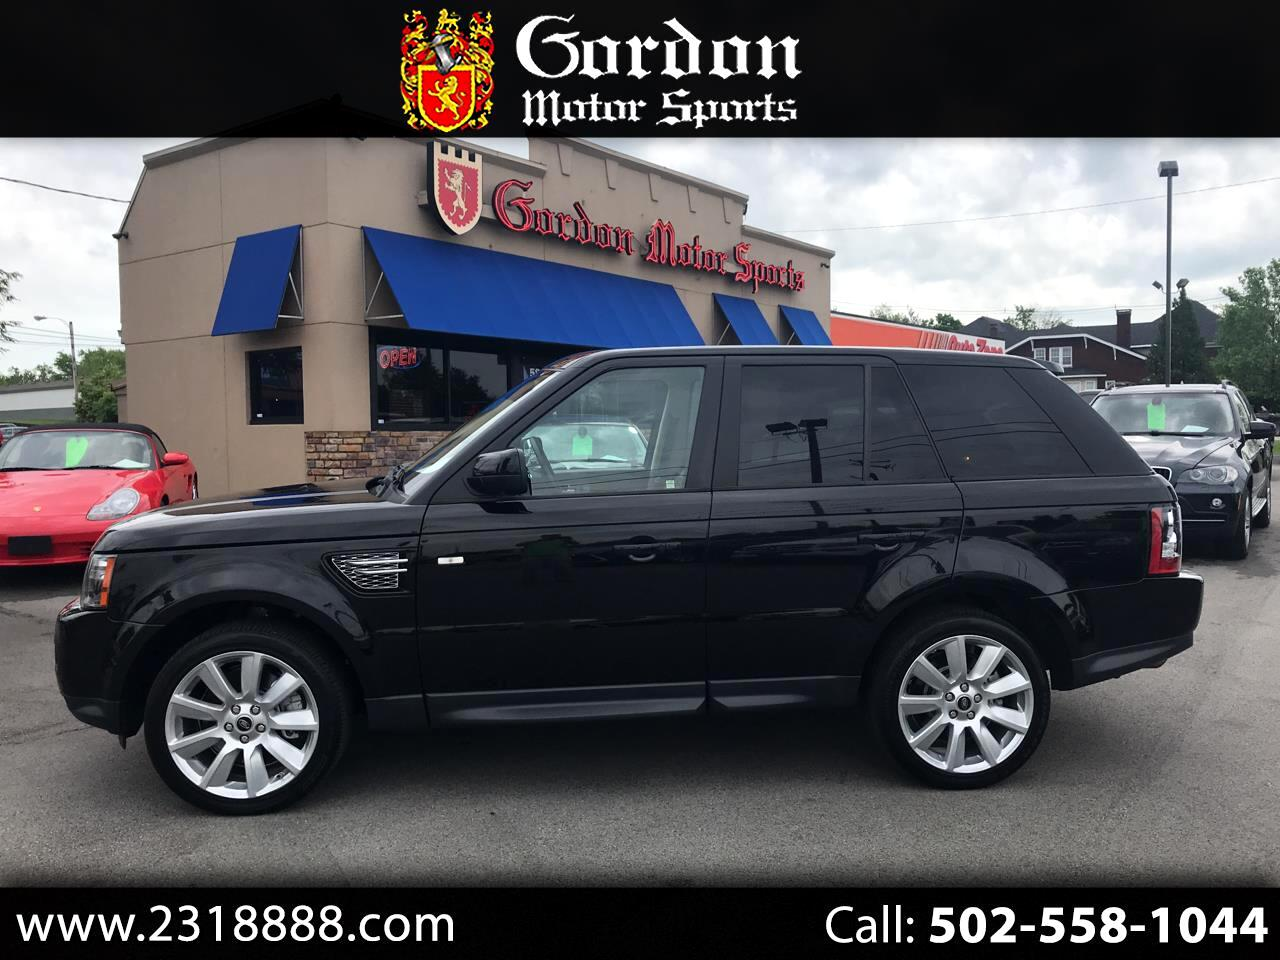 Land Rover Louisville >> Used 2013 Land Rover Range Rover Sport For Sale In Louisville Ky